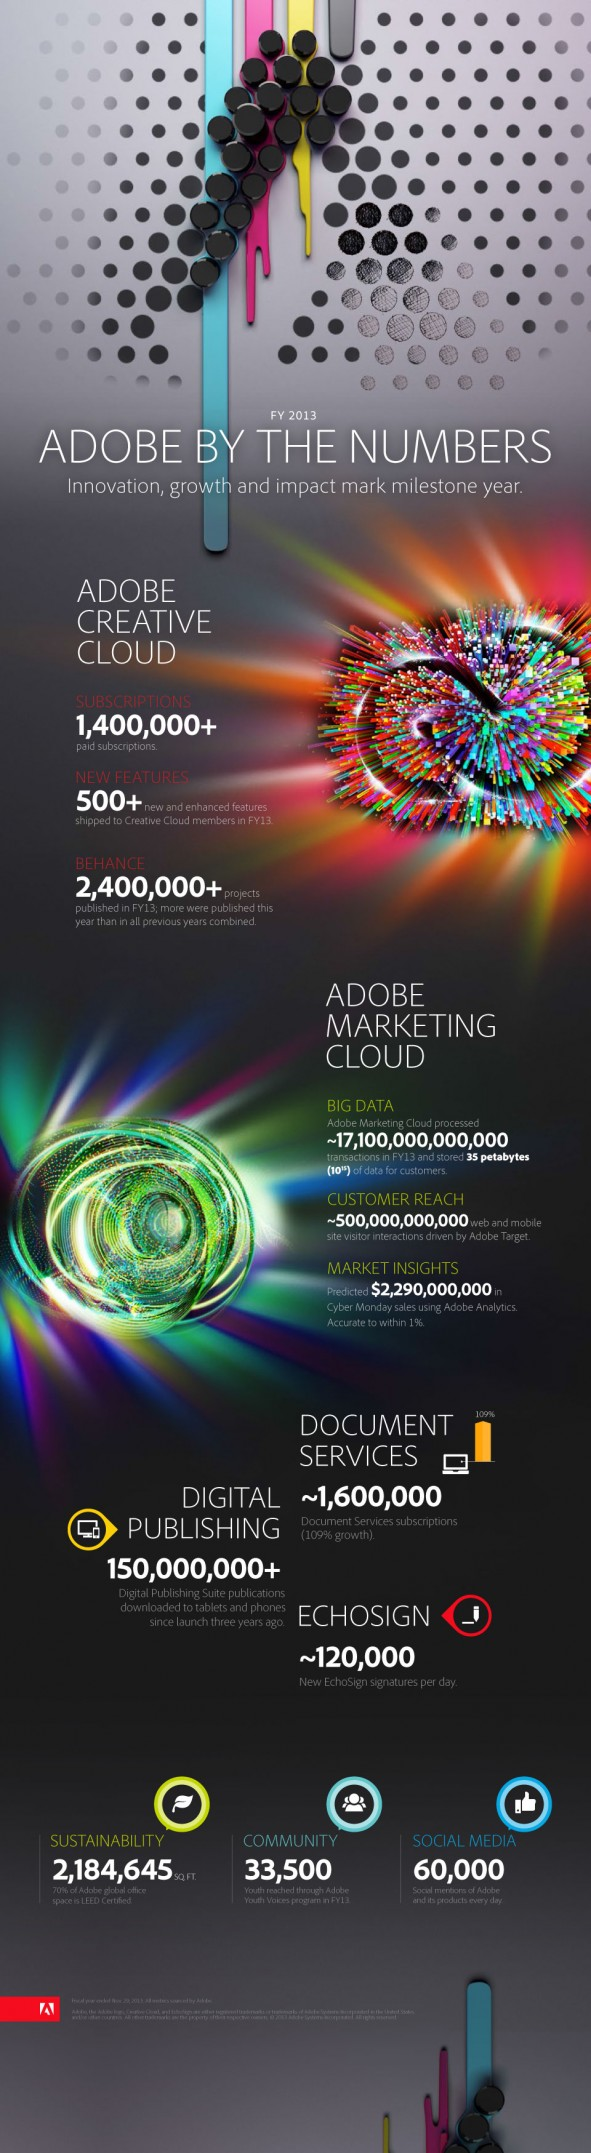 adobe_by_numbers_fy2013